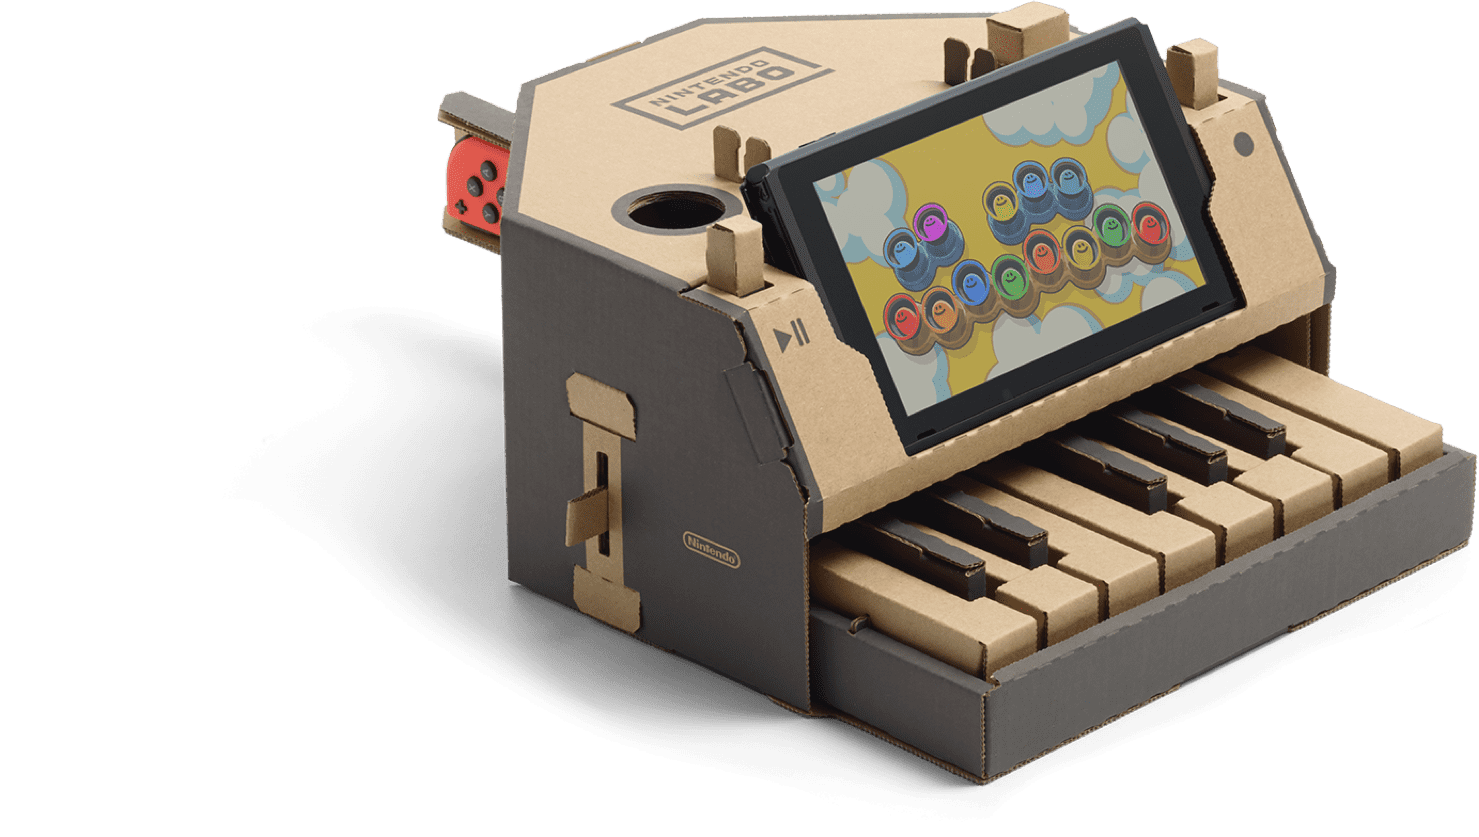 Piano clipart green toy. Nintendo labo for the